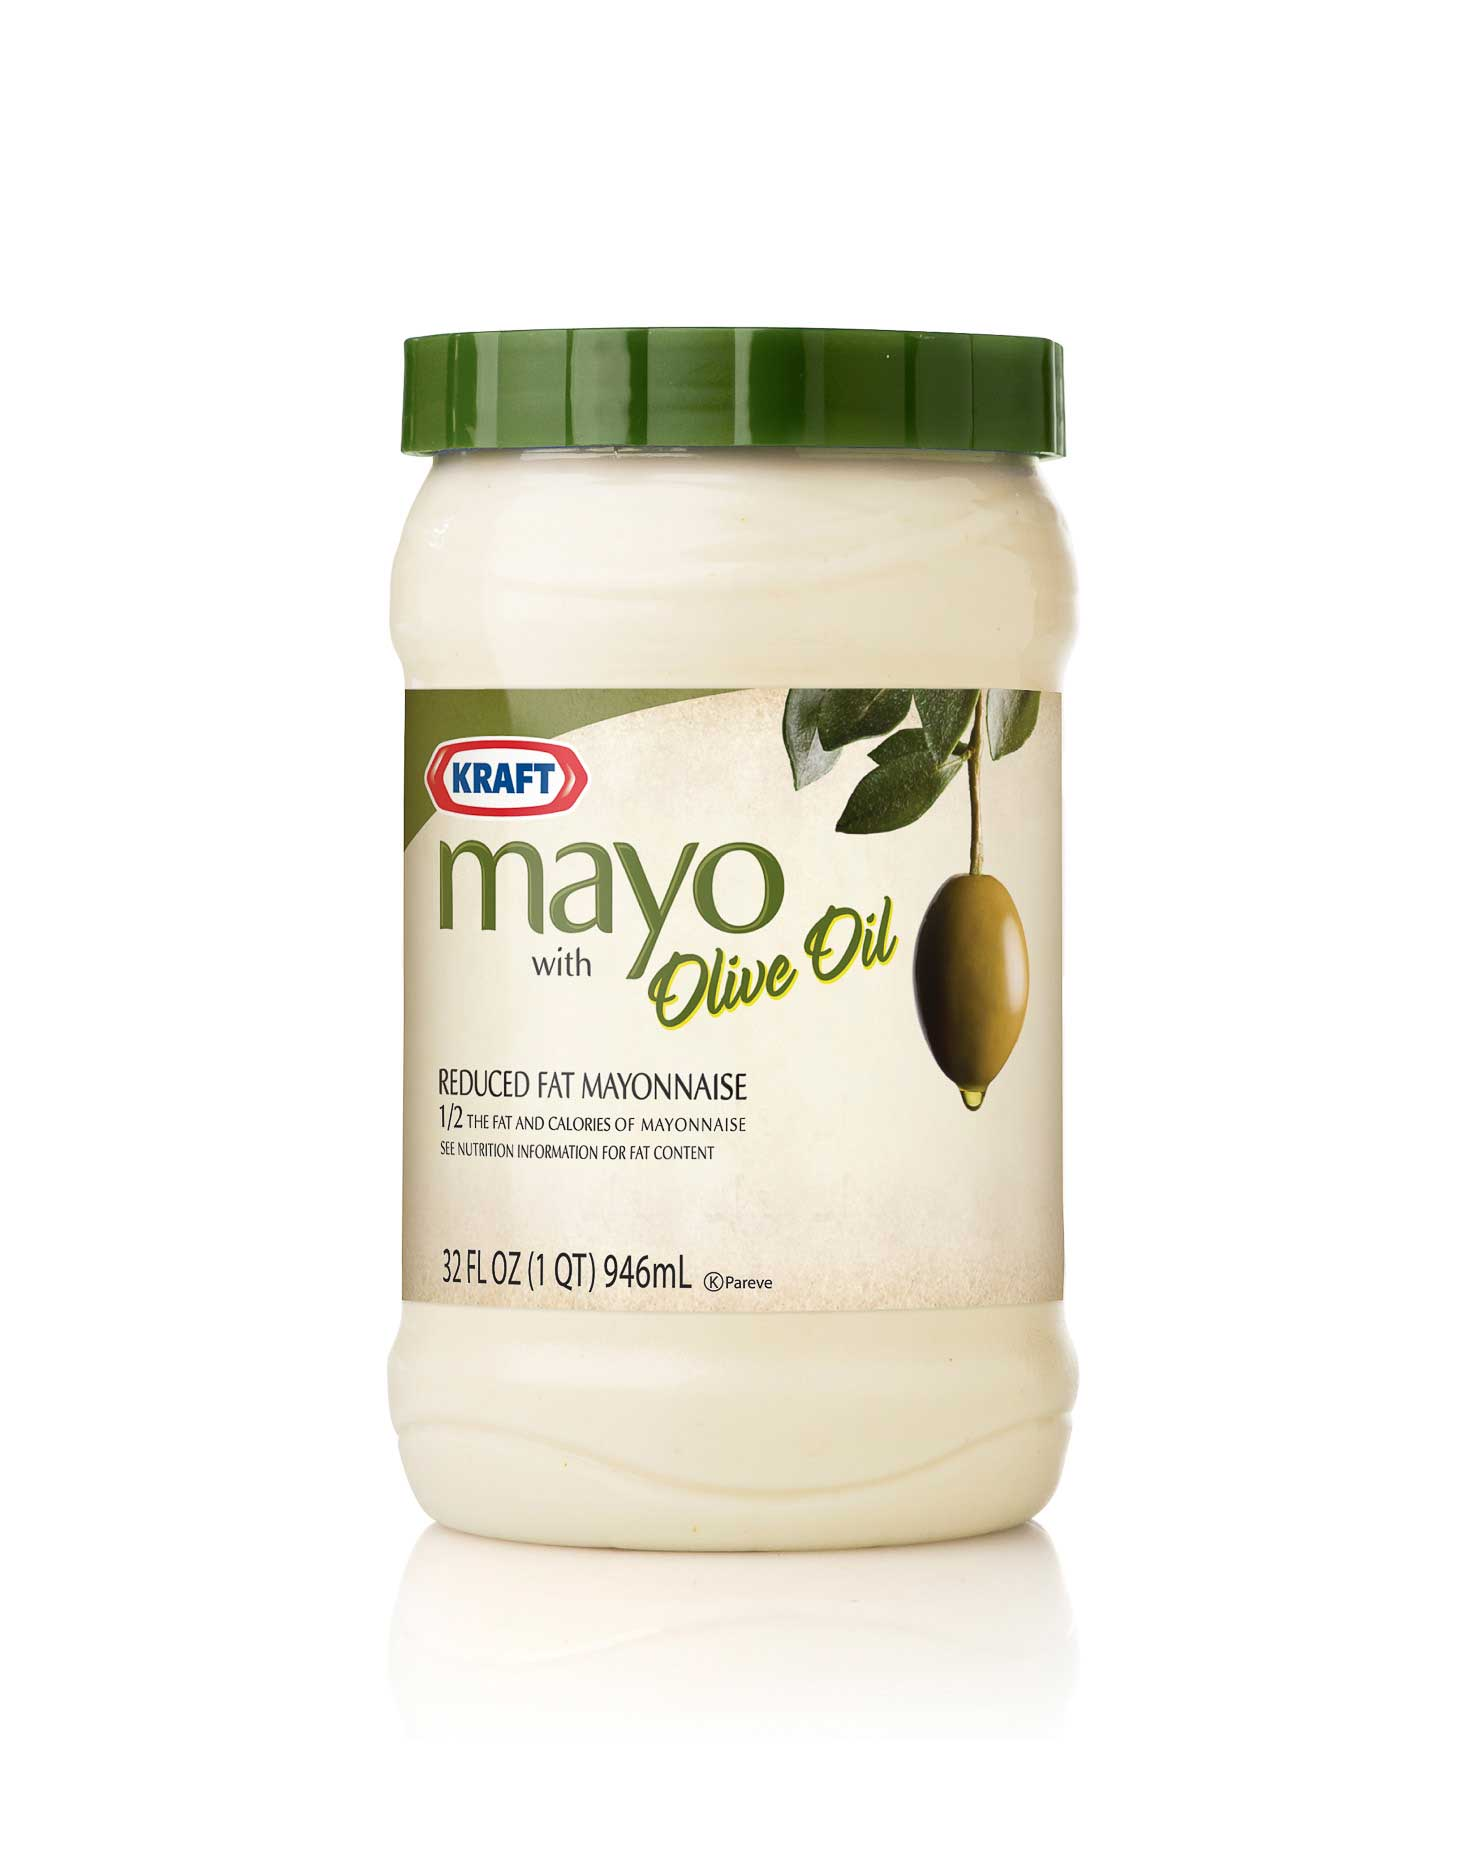 Right: Kraft - Mayonnaise made with Olive Oil - Packaging - Spring Design Partners